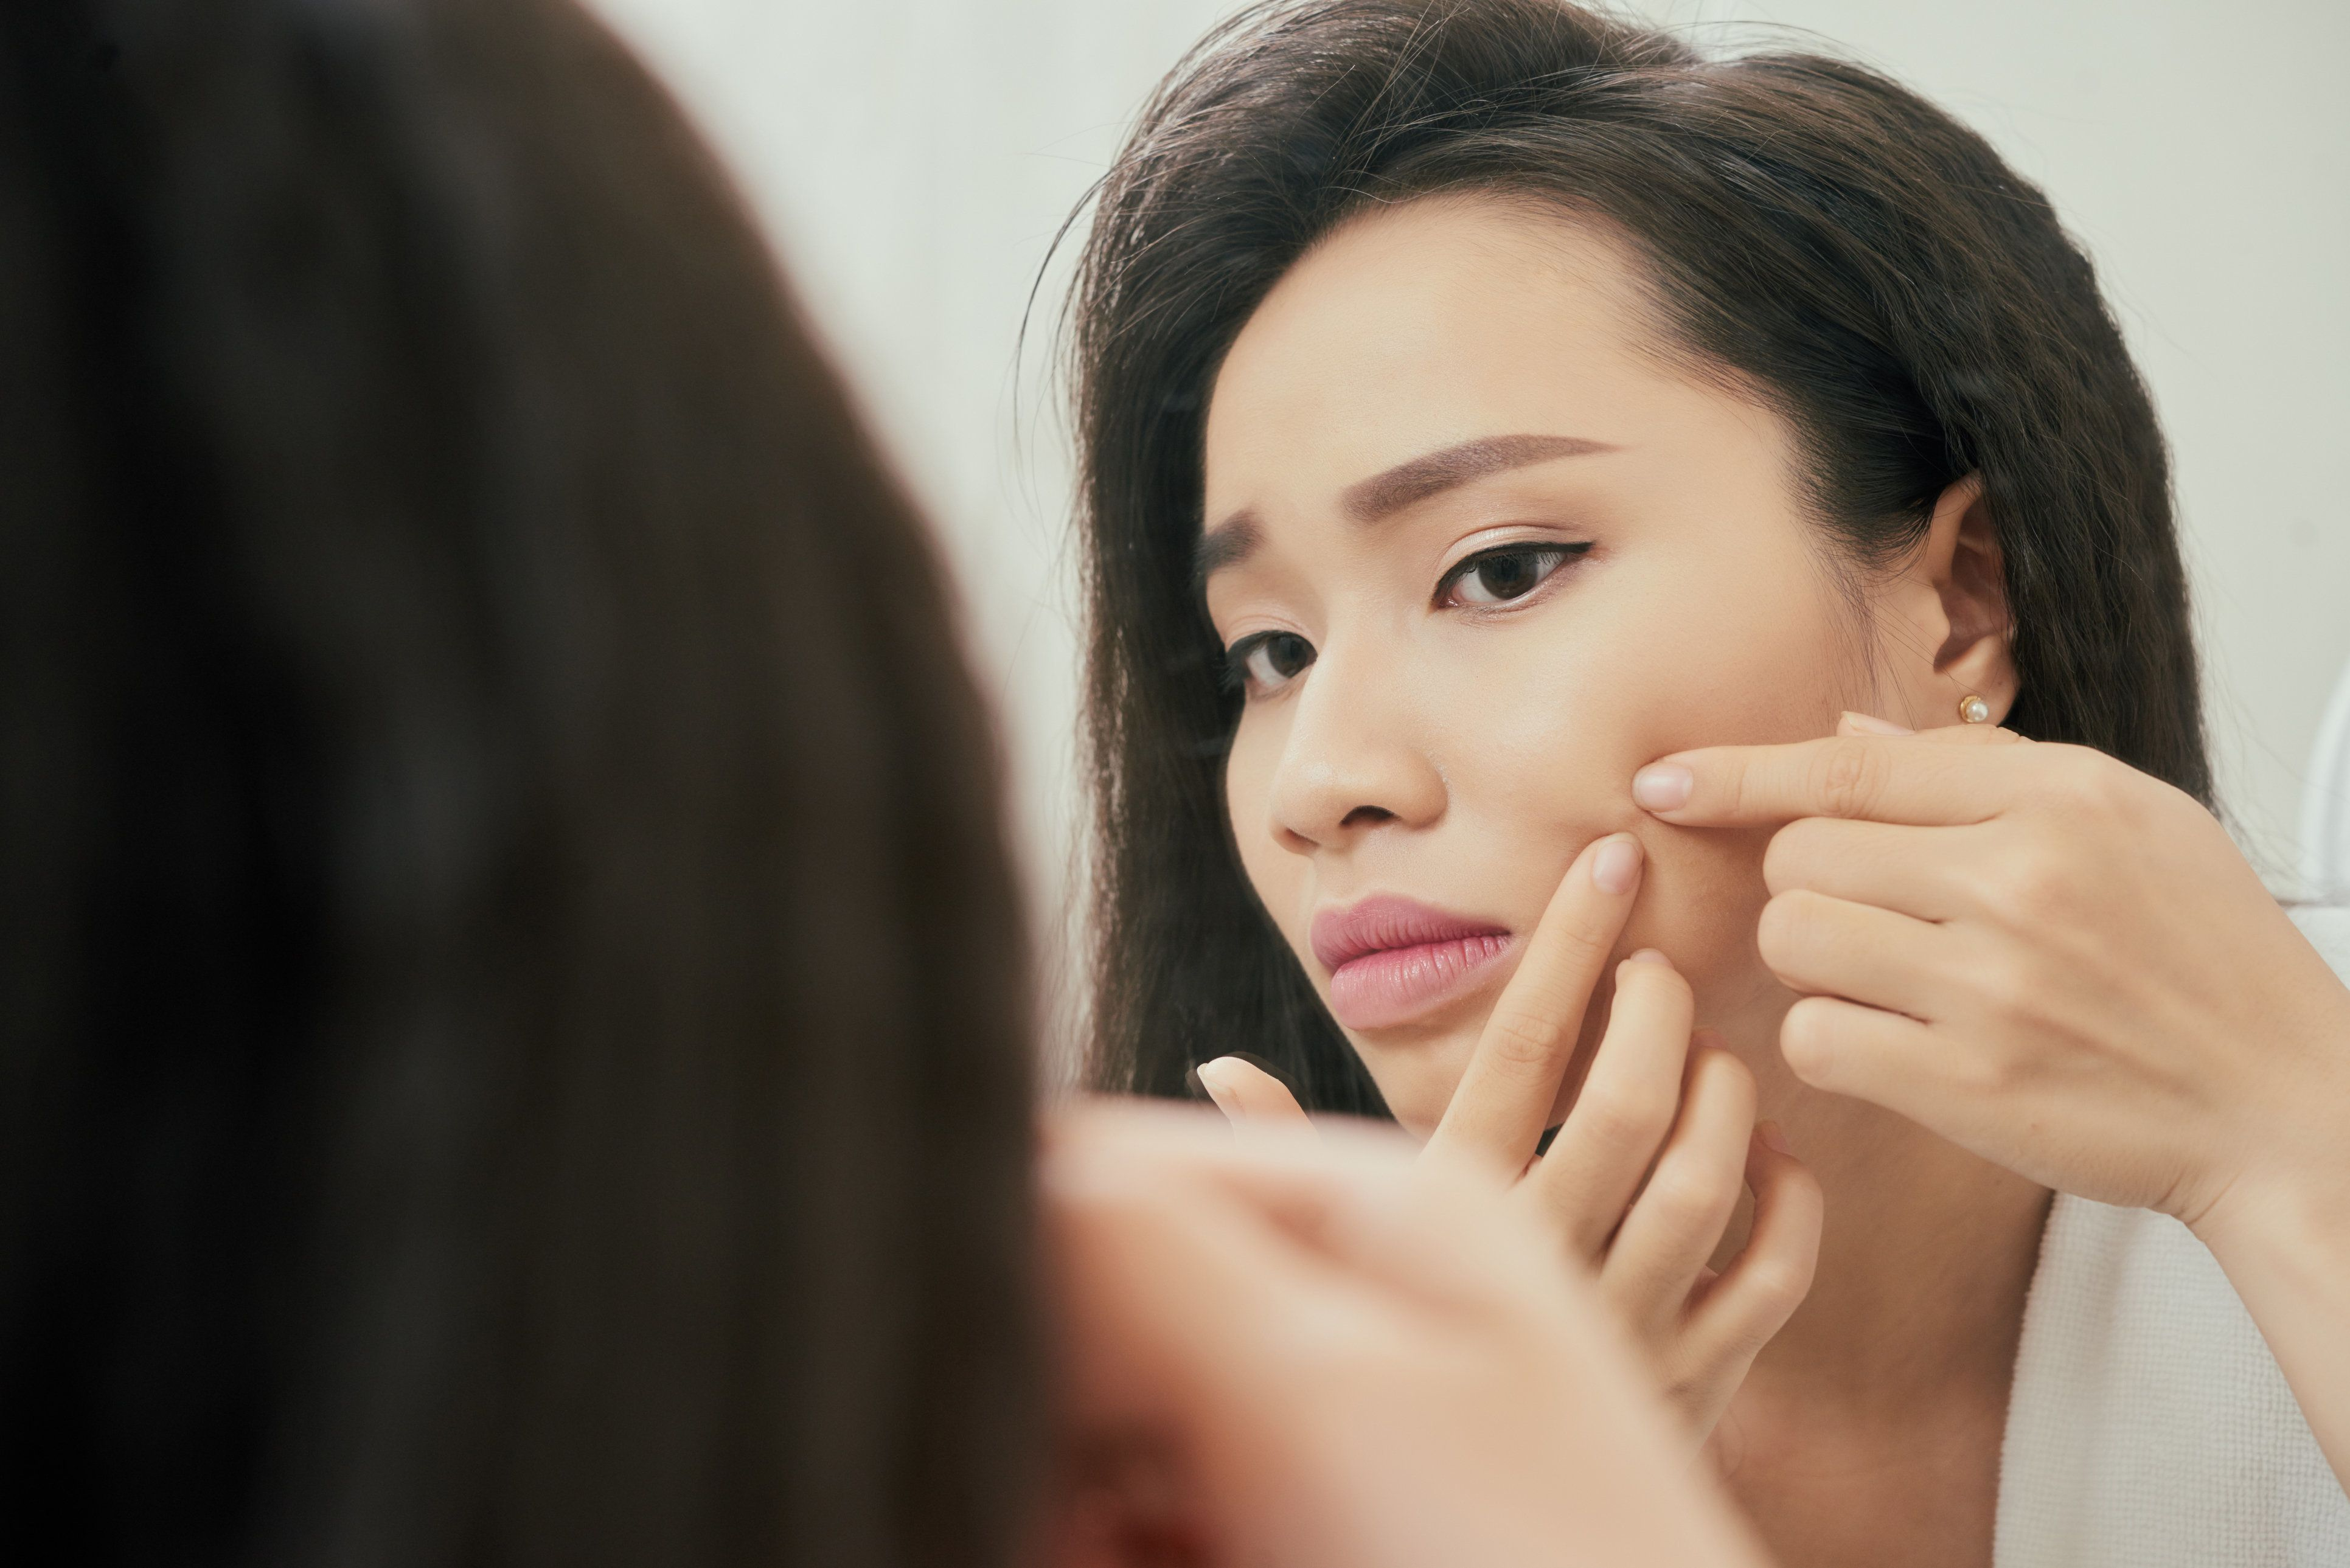 The Best Way To Pop A Pimple Safely, According To